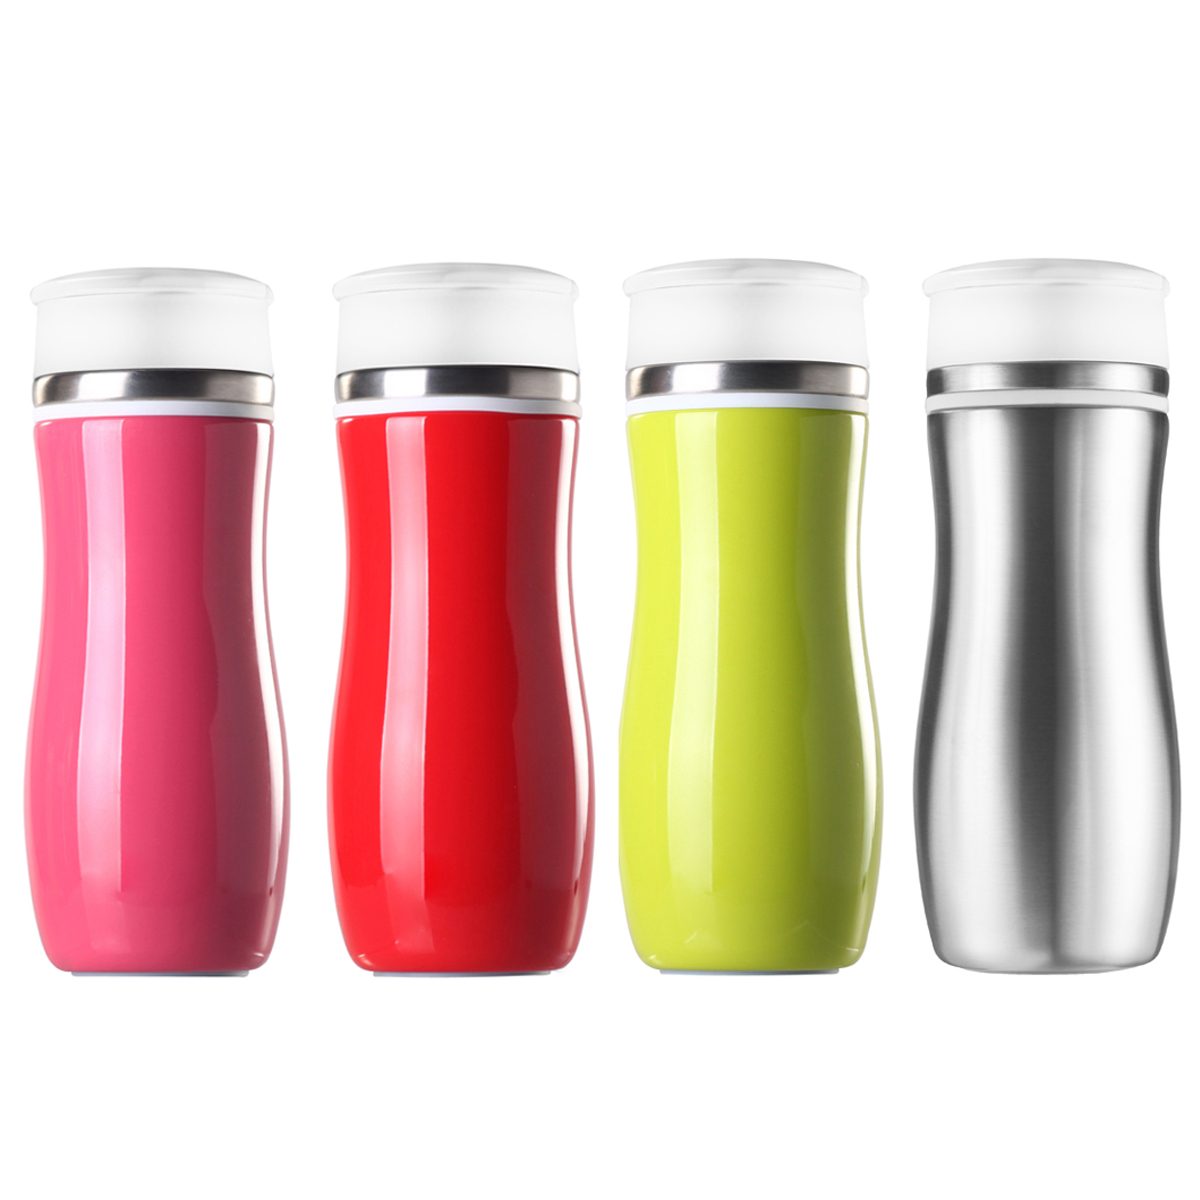 fb2e9c251aa0e ... Tazza Vacuum Mug from the line up at Timolino to review